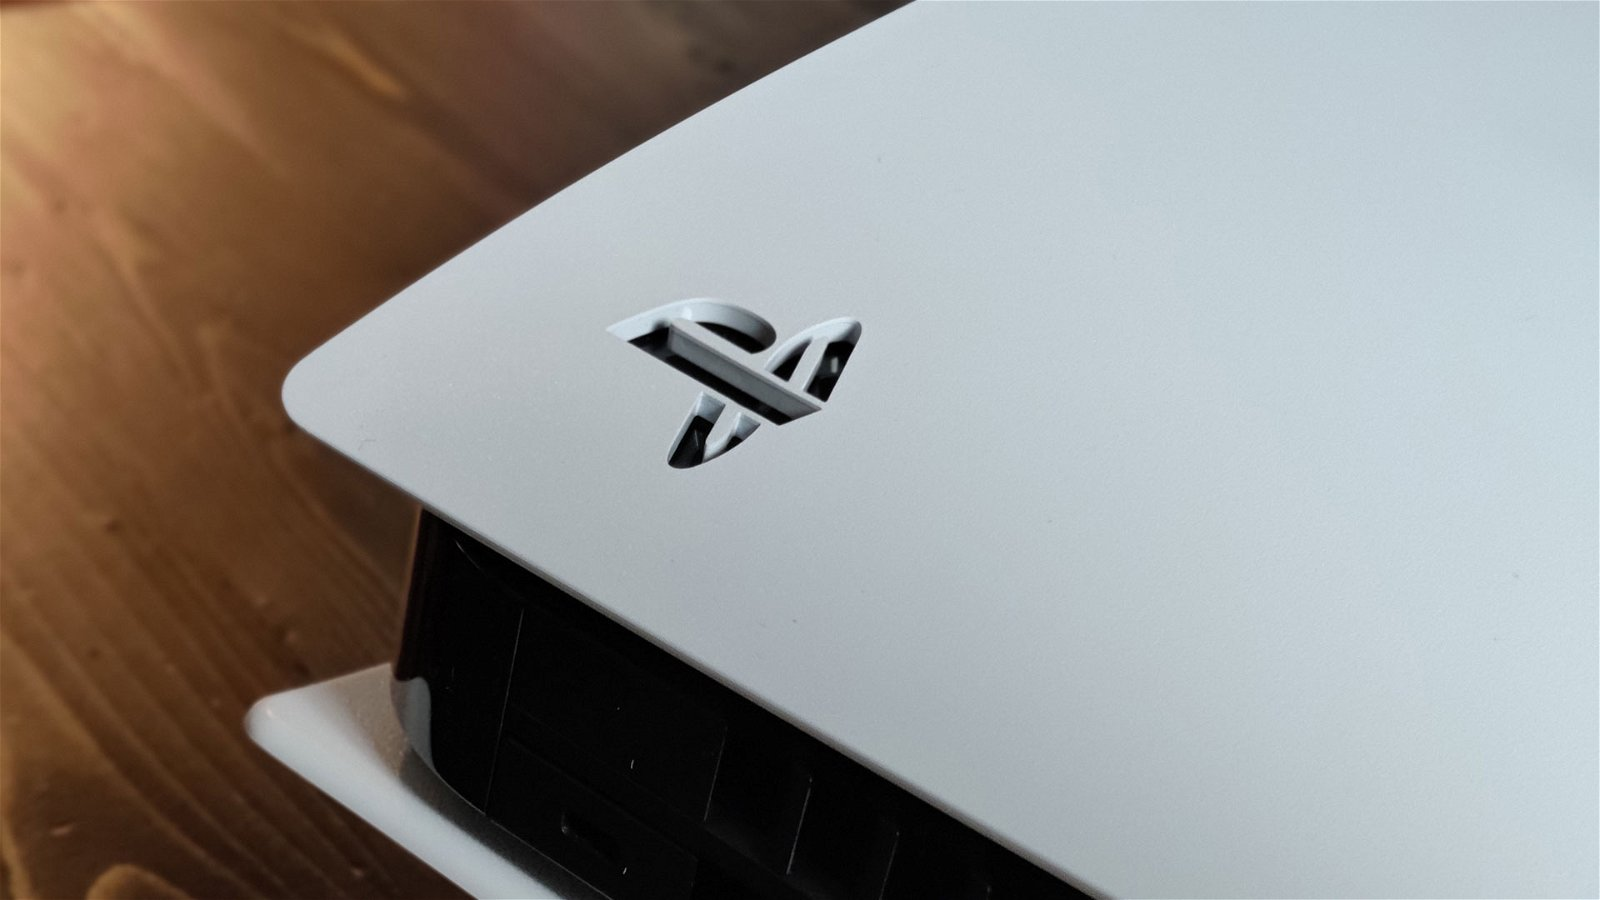 PS5 Redesign Will Enter Production In 2022